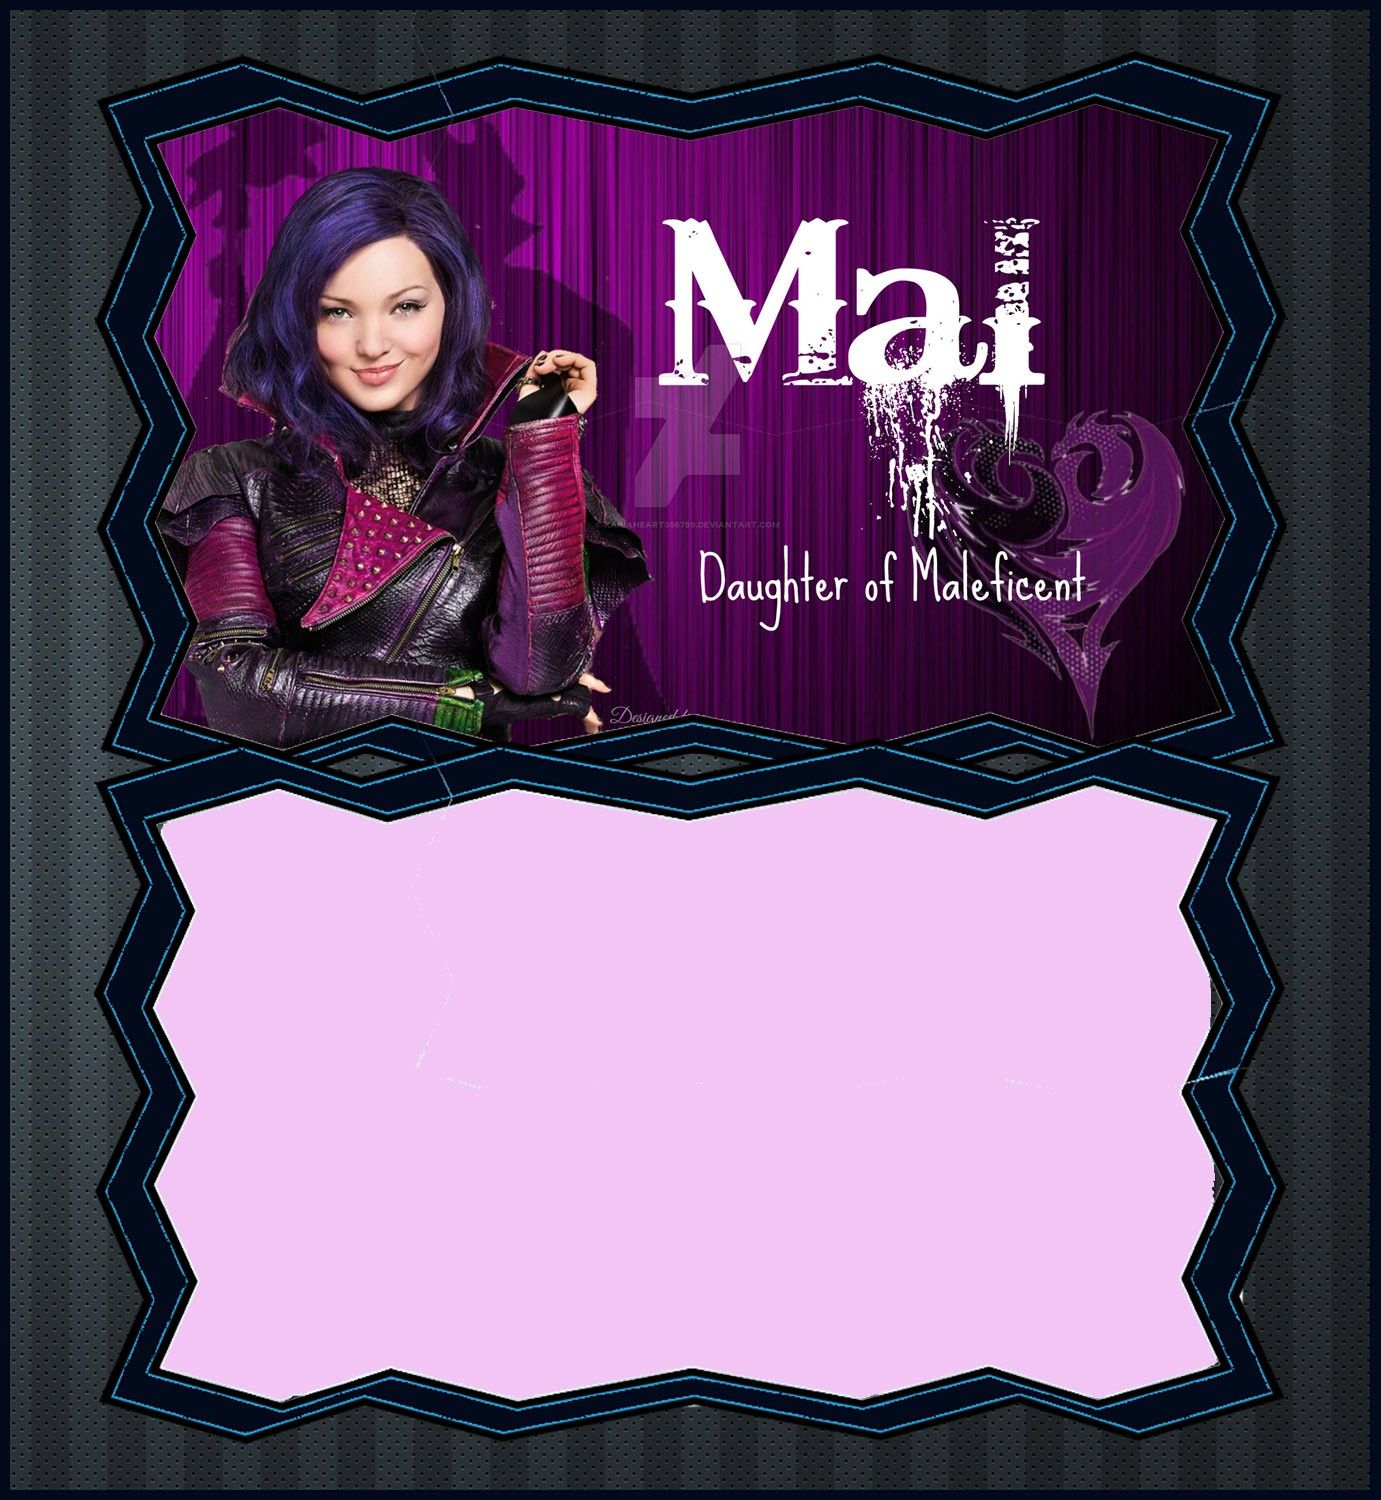 Descendants Mal Invitation Template | Coolest Invitation Templates - Free Printable Descendants Invitations